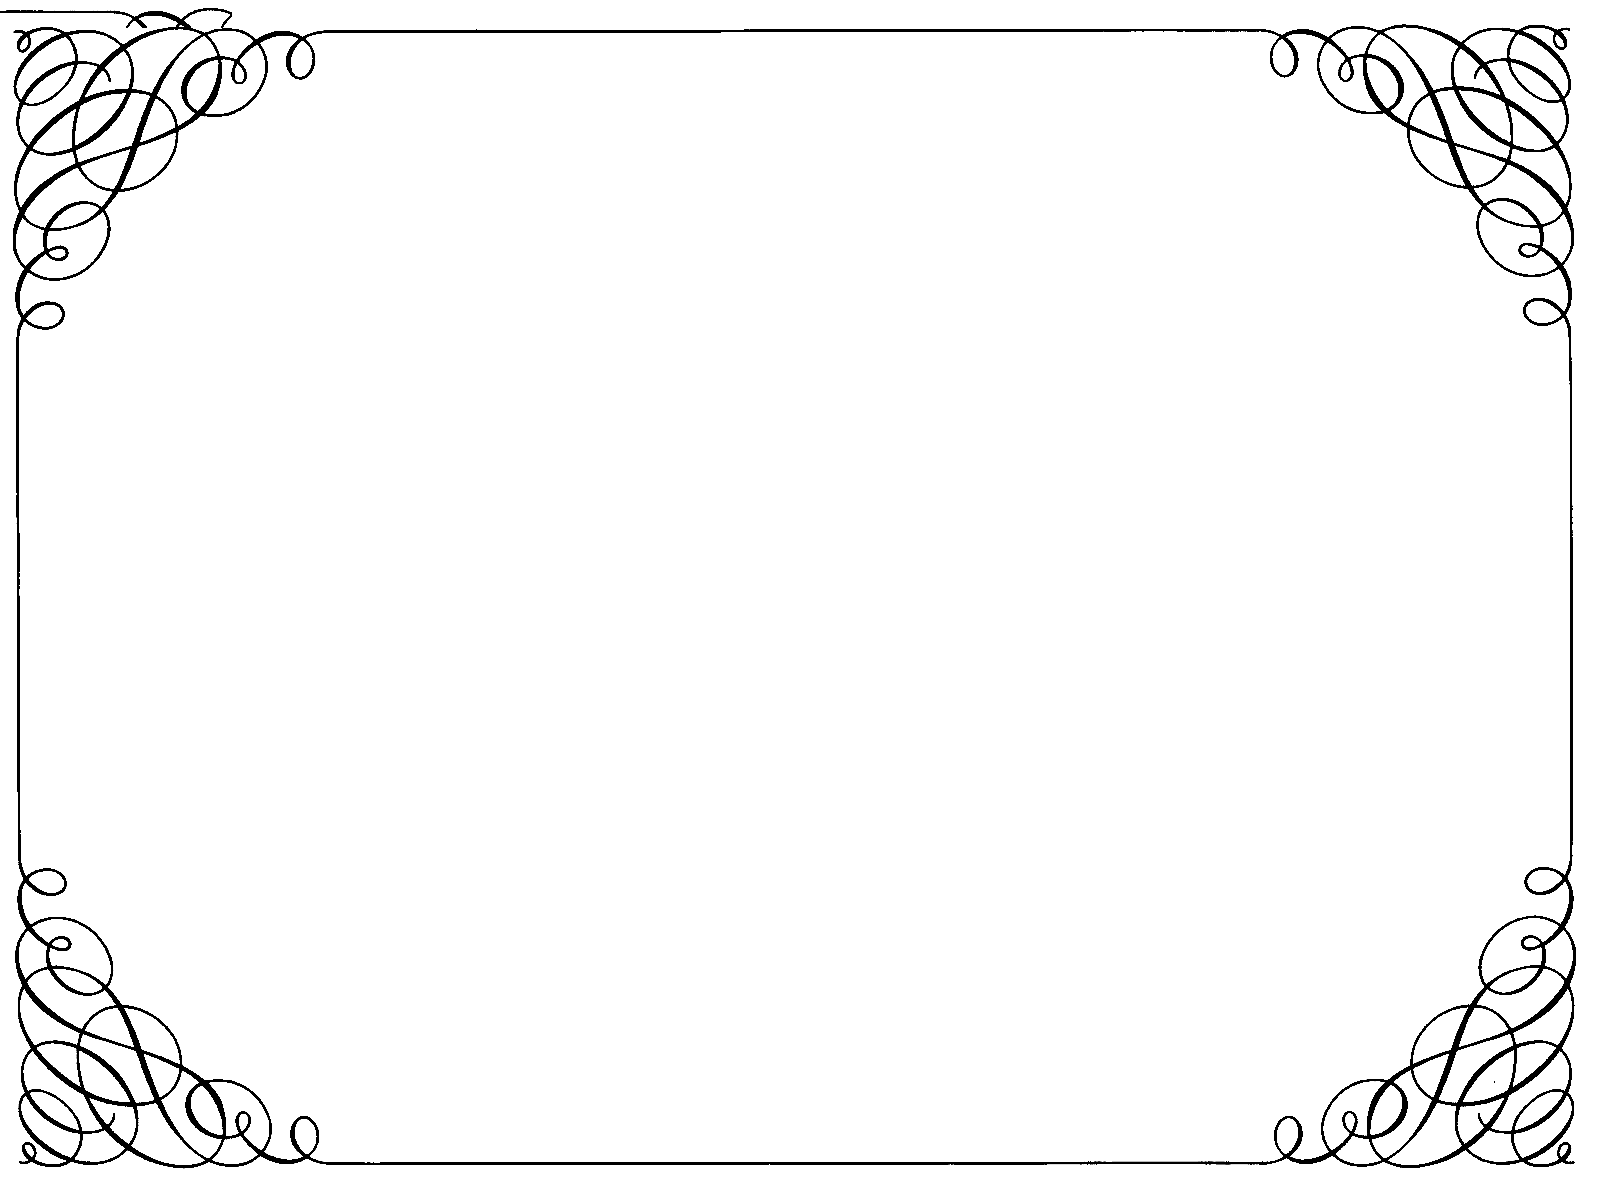 Ornate Curly Border transparent PNG.